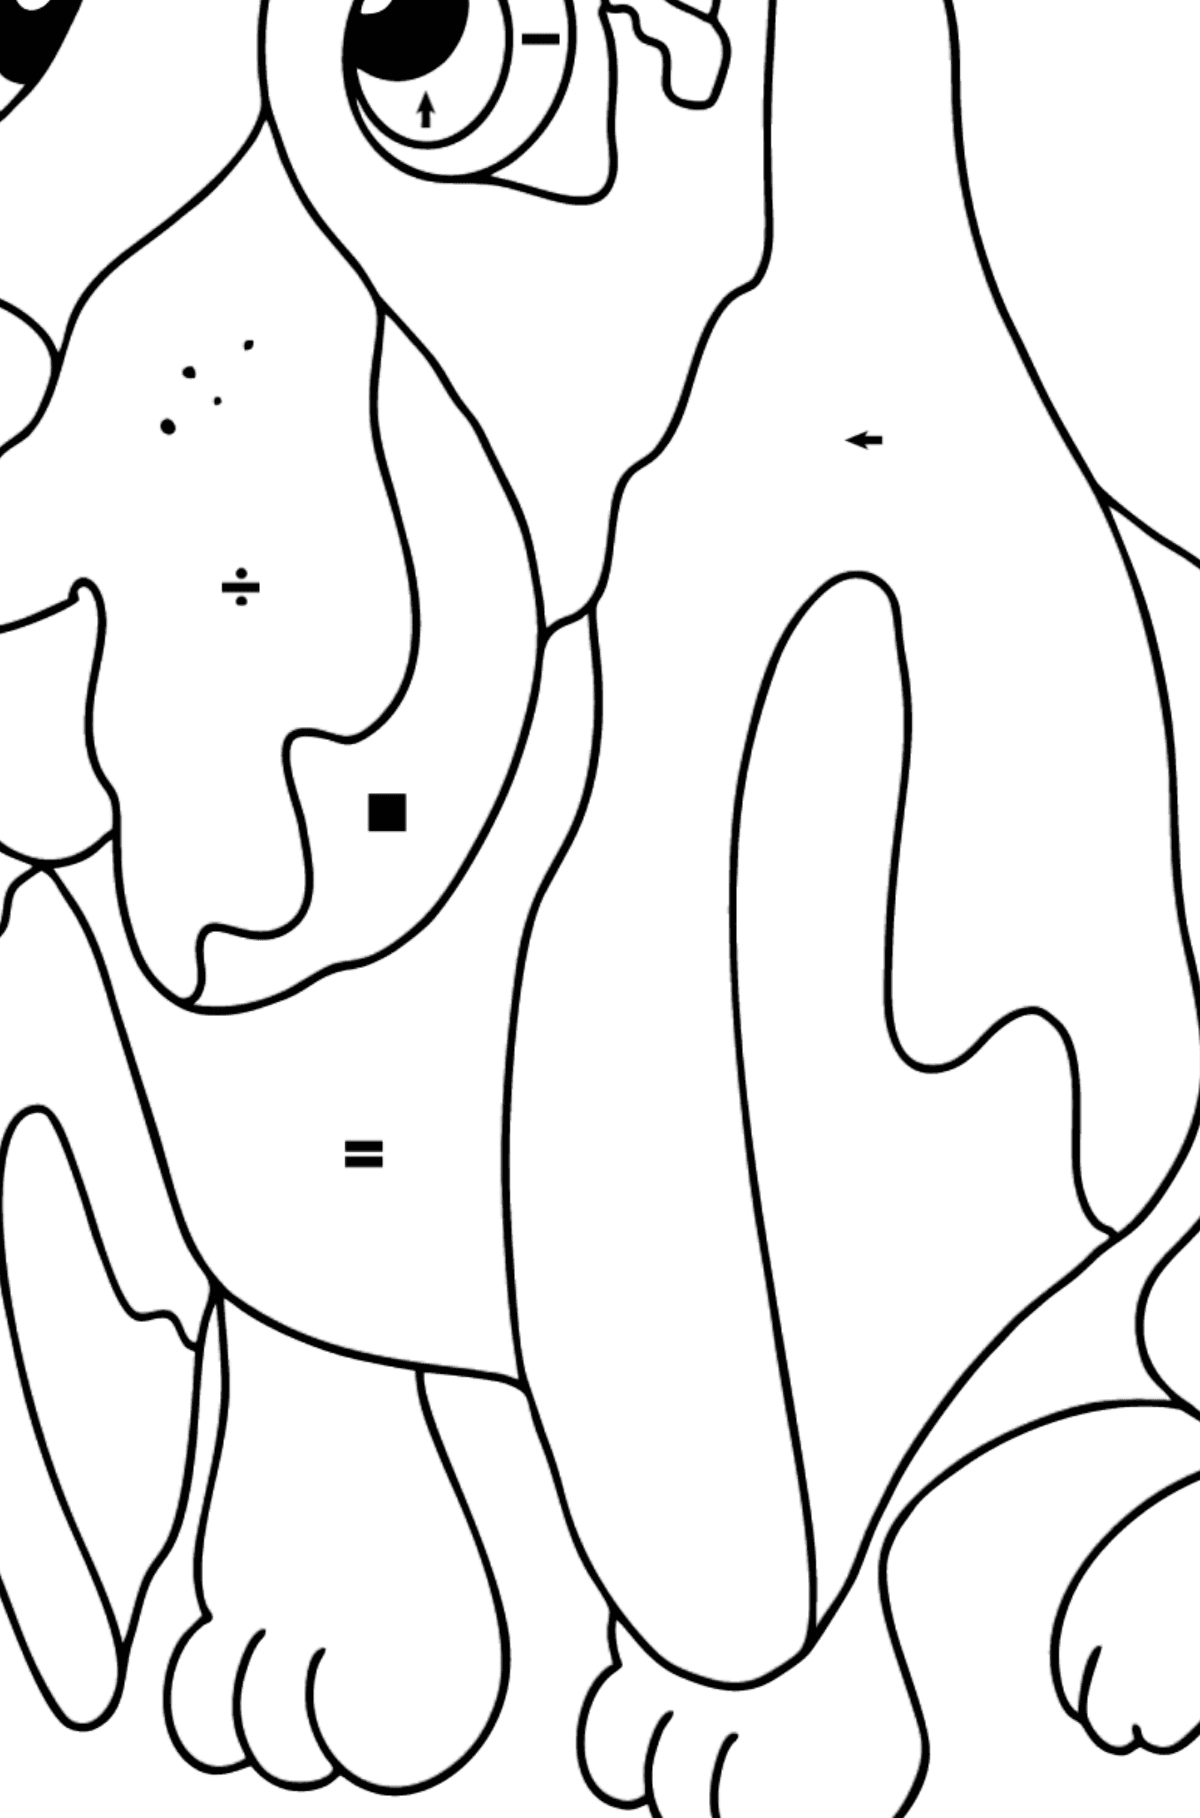 Coloring Page - A Dog is Sitting near a Bone - Coloring by Symbols for Kids